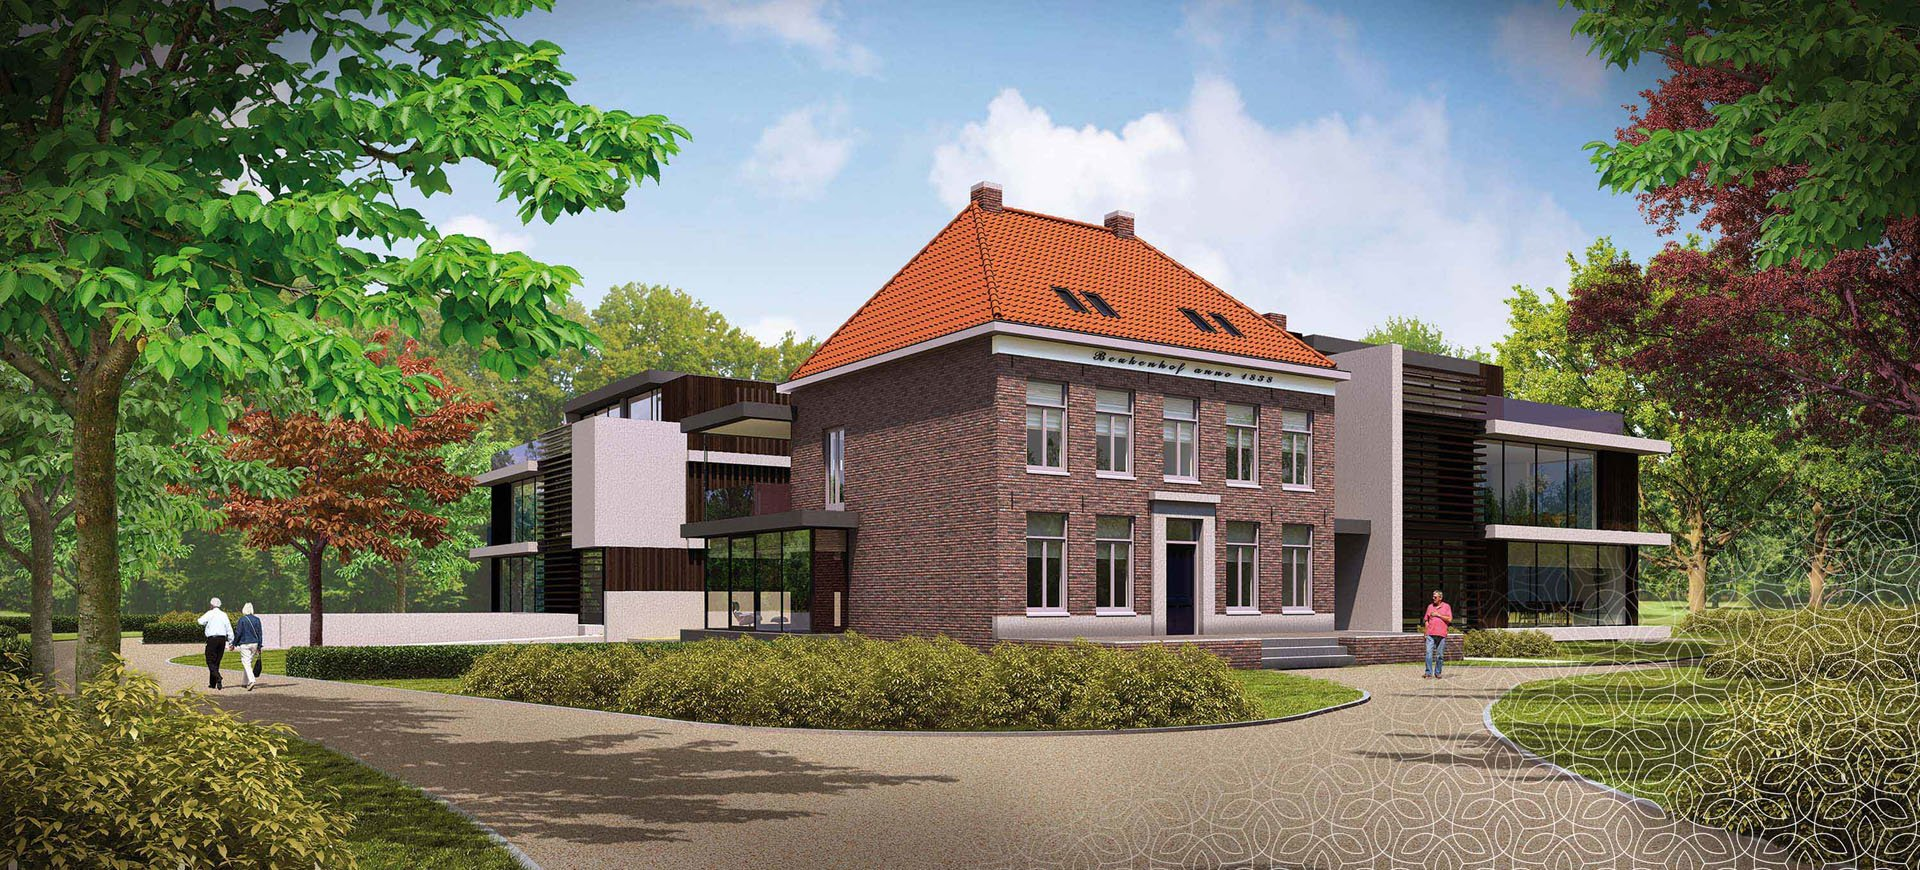 Project Beukenhof in Bergeijk